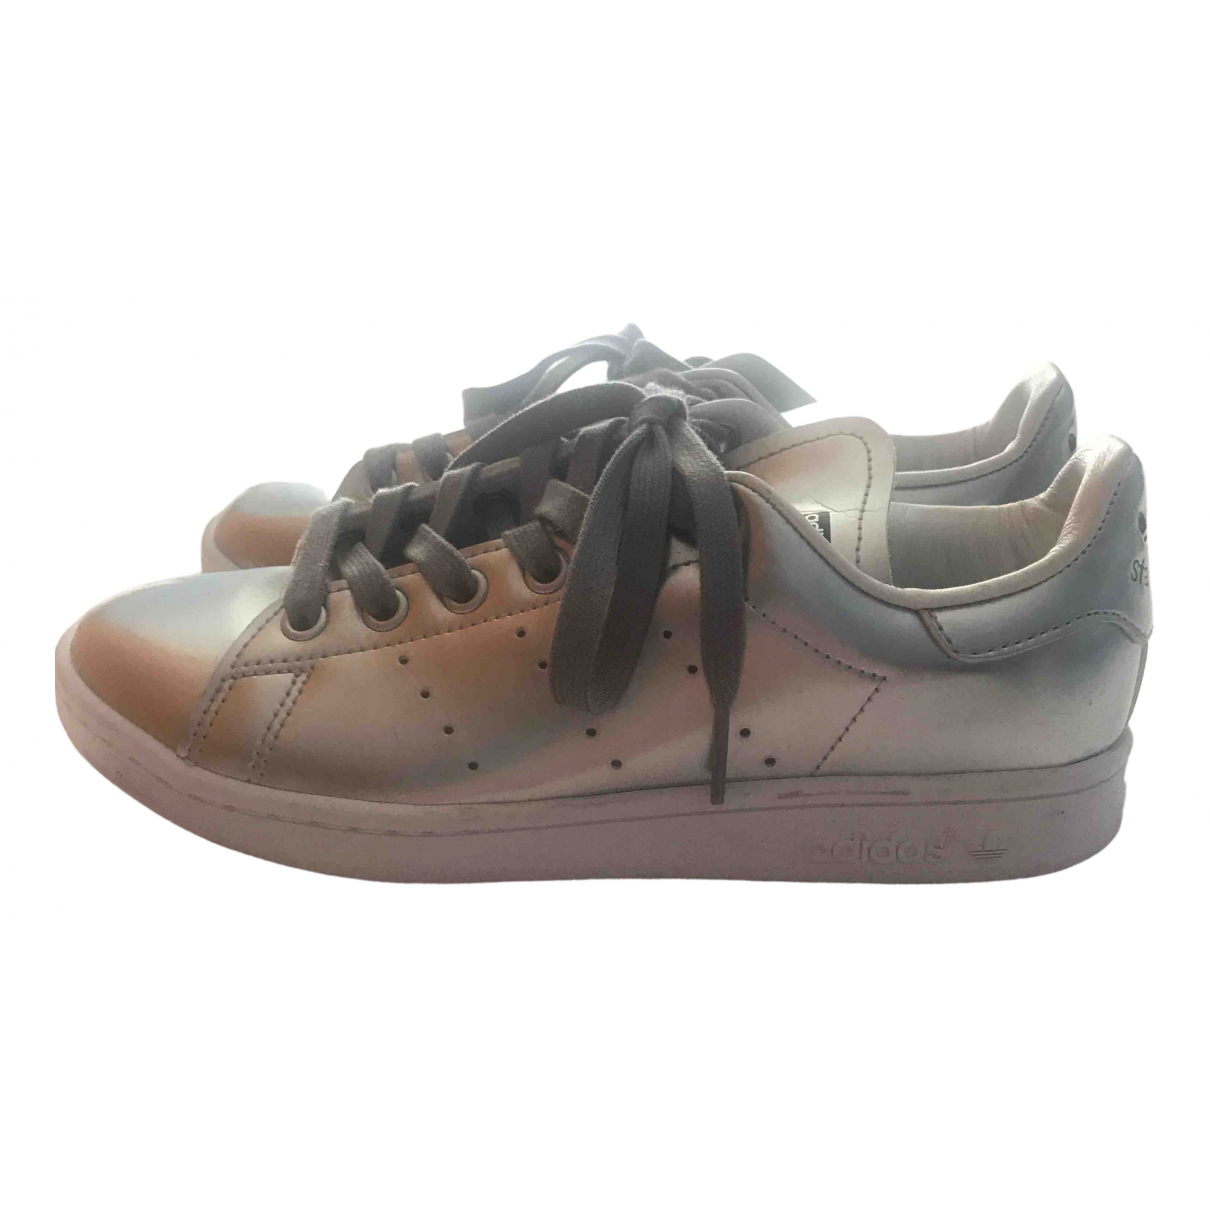 Adidas Stan Smith Silver Leather Trainers for Women 4 UK